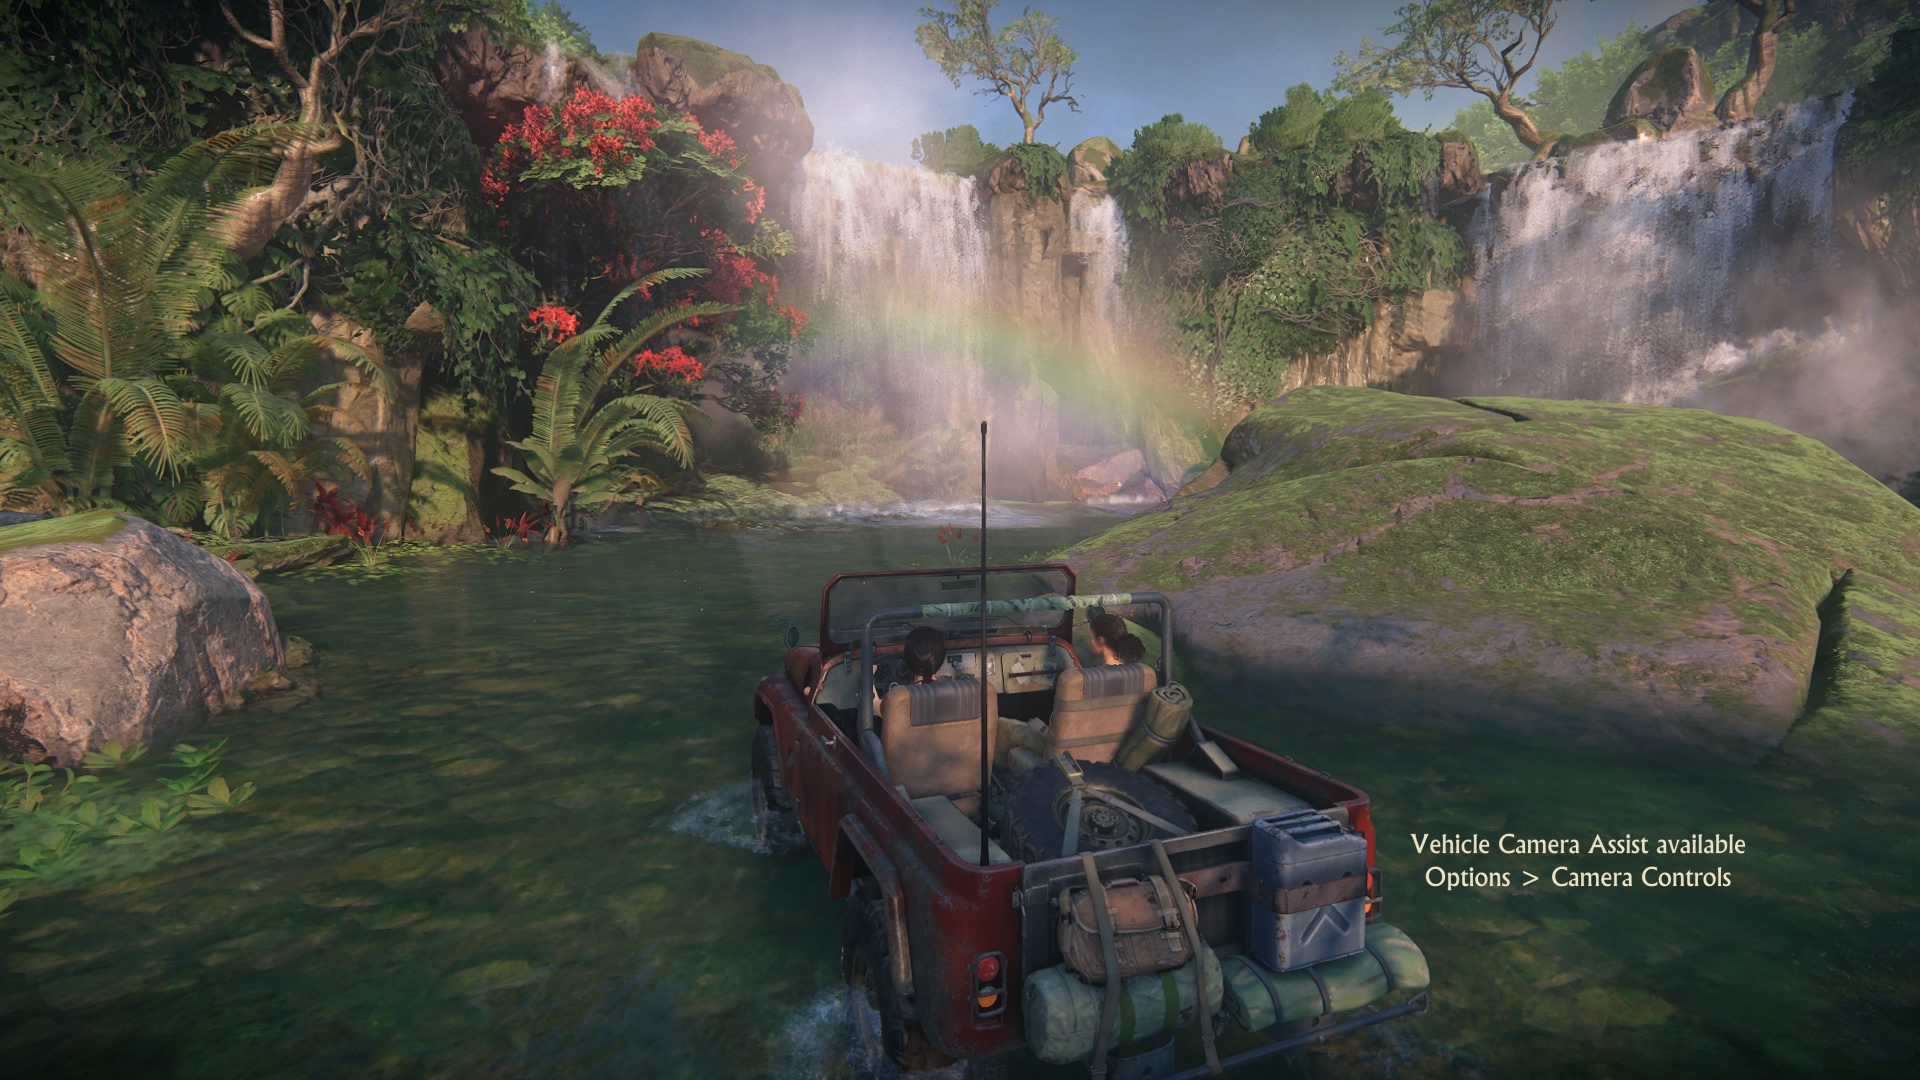 Naughty Dog Developers Discuss Creating The Unique Indian Story And Ps4uncharted Lost Legacy Reg 3 Uncharted Rainbow